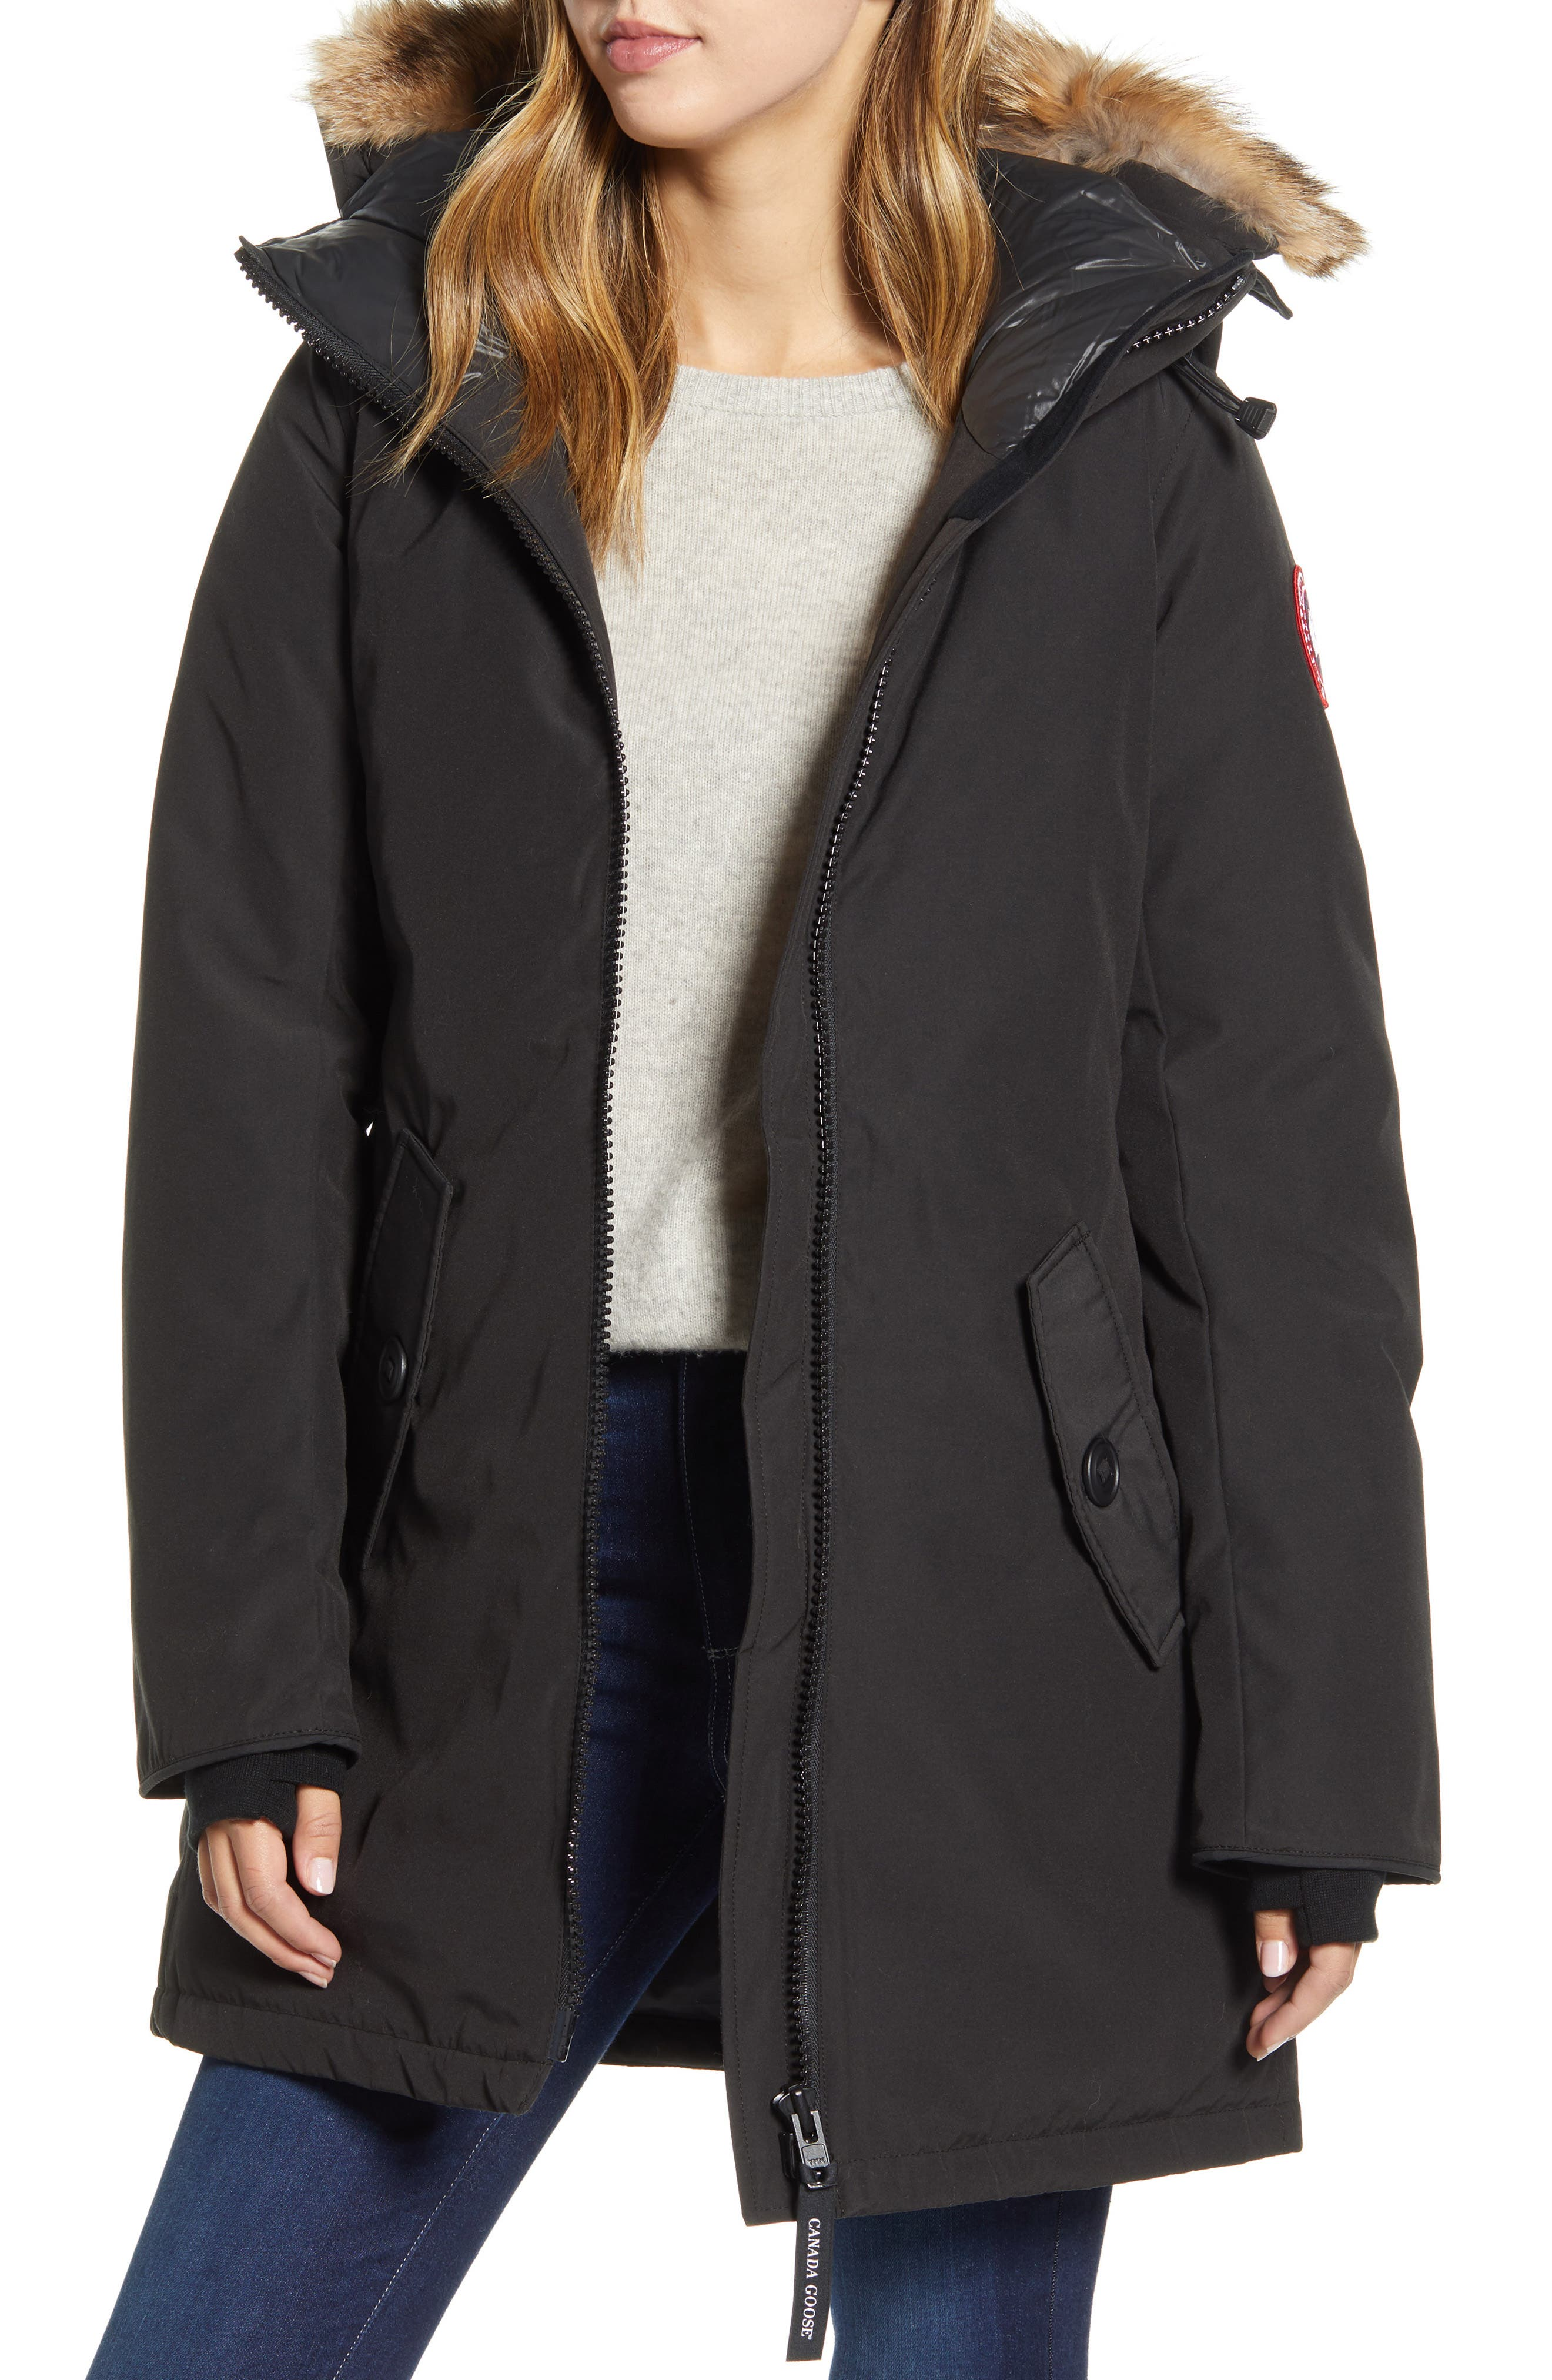 Canada Goose Rosemont Arctic Tech 625 Fill Power Down Parka with Genuine Coyote Fur Trim